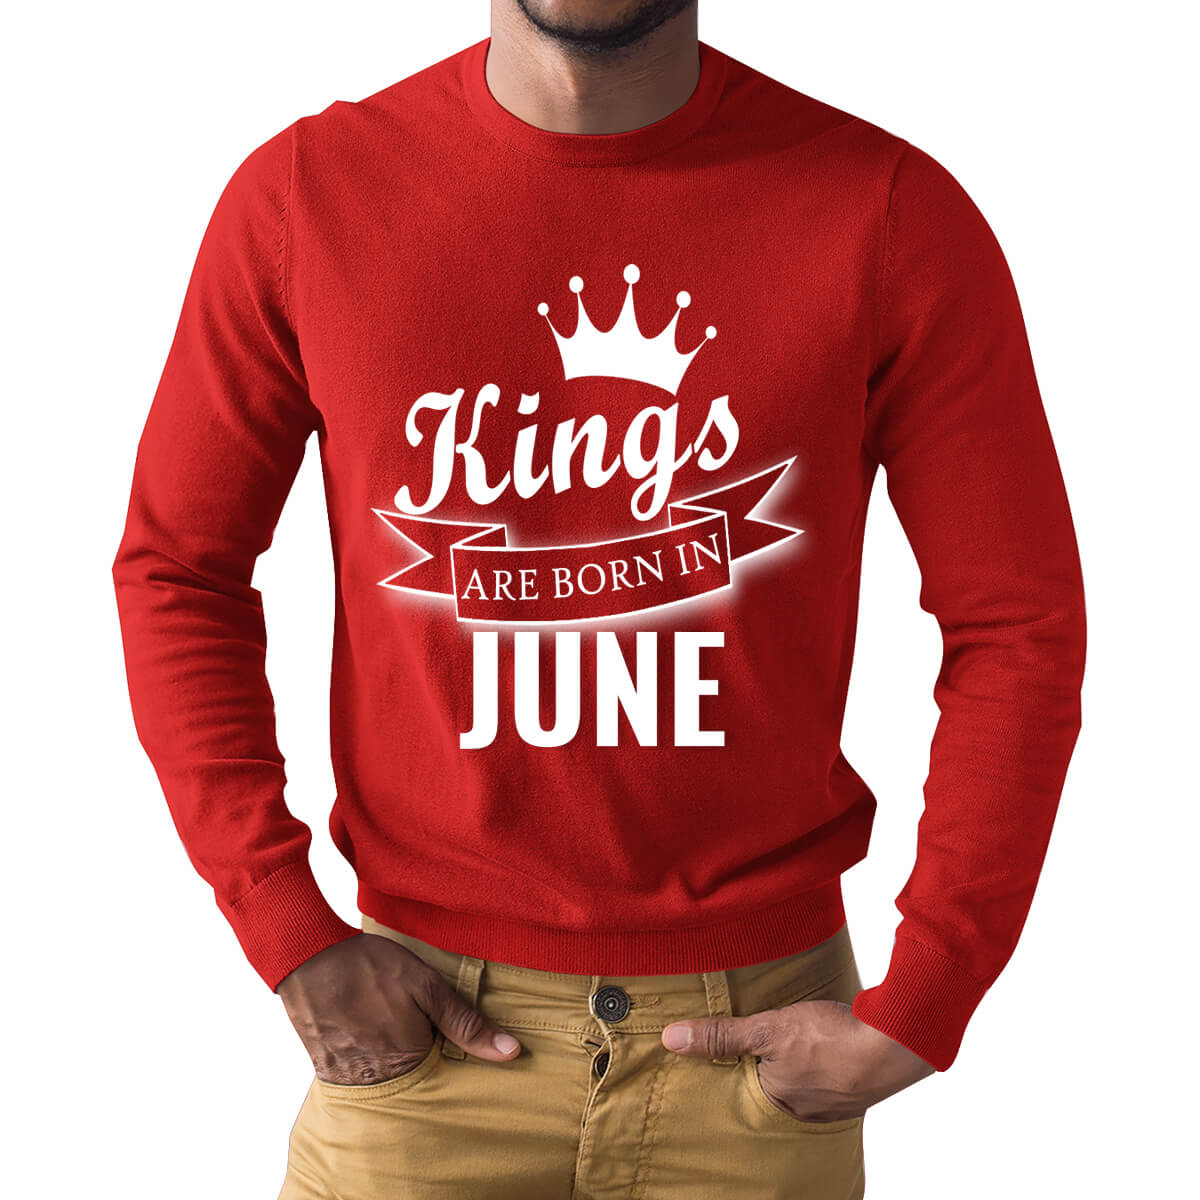 835541df Buy Born In June Men T Shirt products online at low prices in India    Eruthu.com